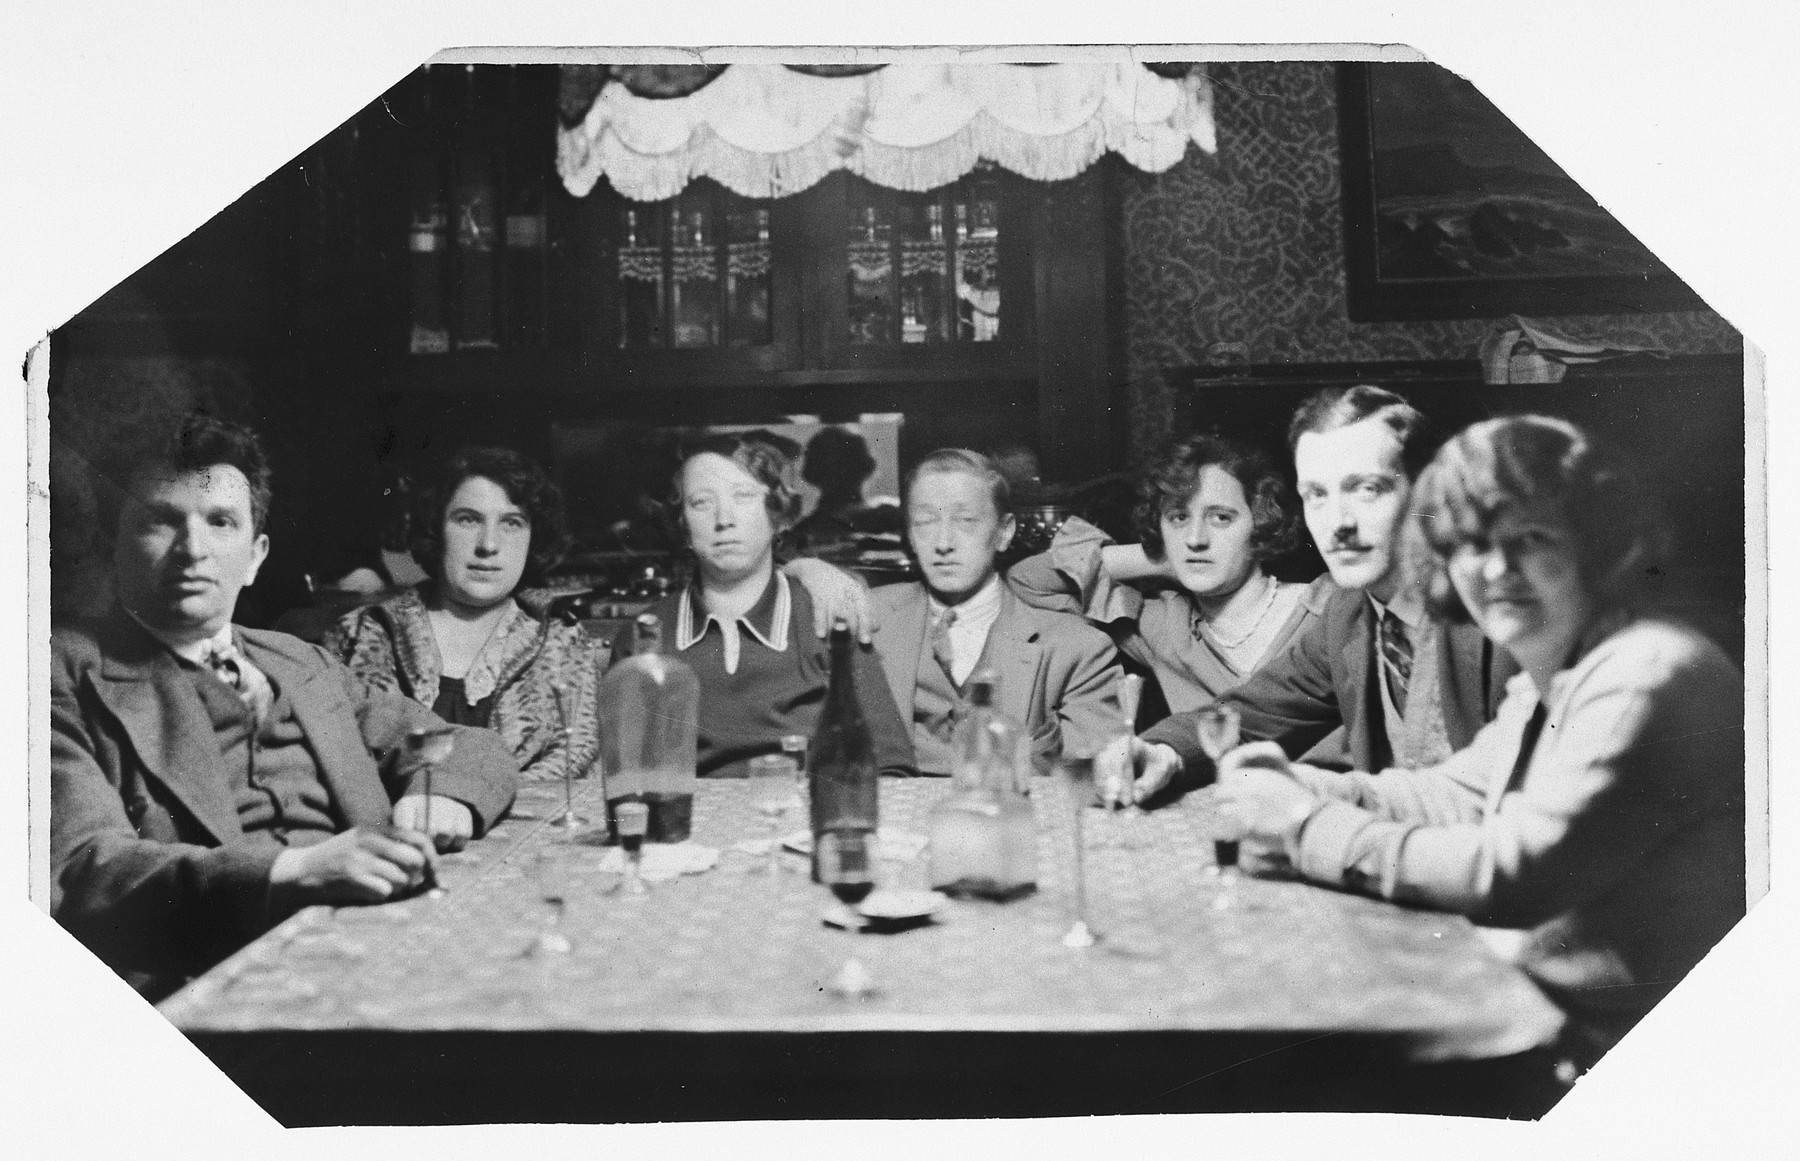 Rudolf and Ana Brosan (left) have a glass of wine with friends.